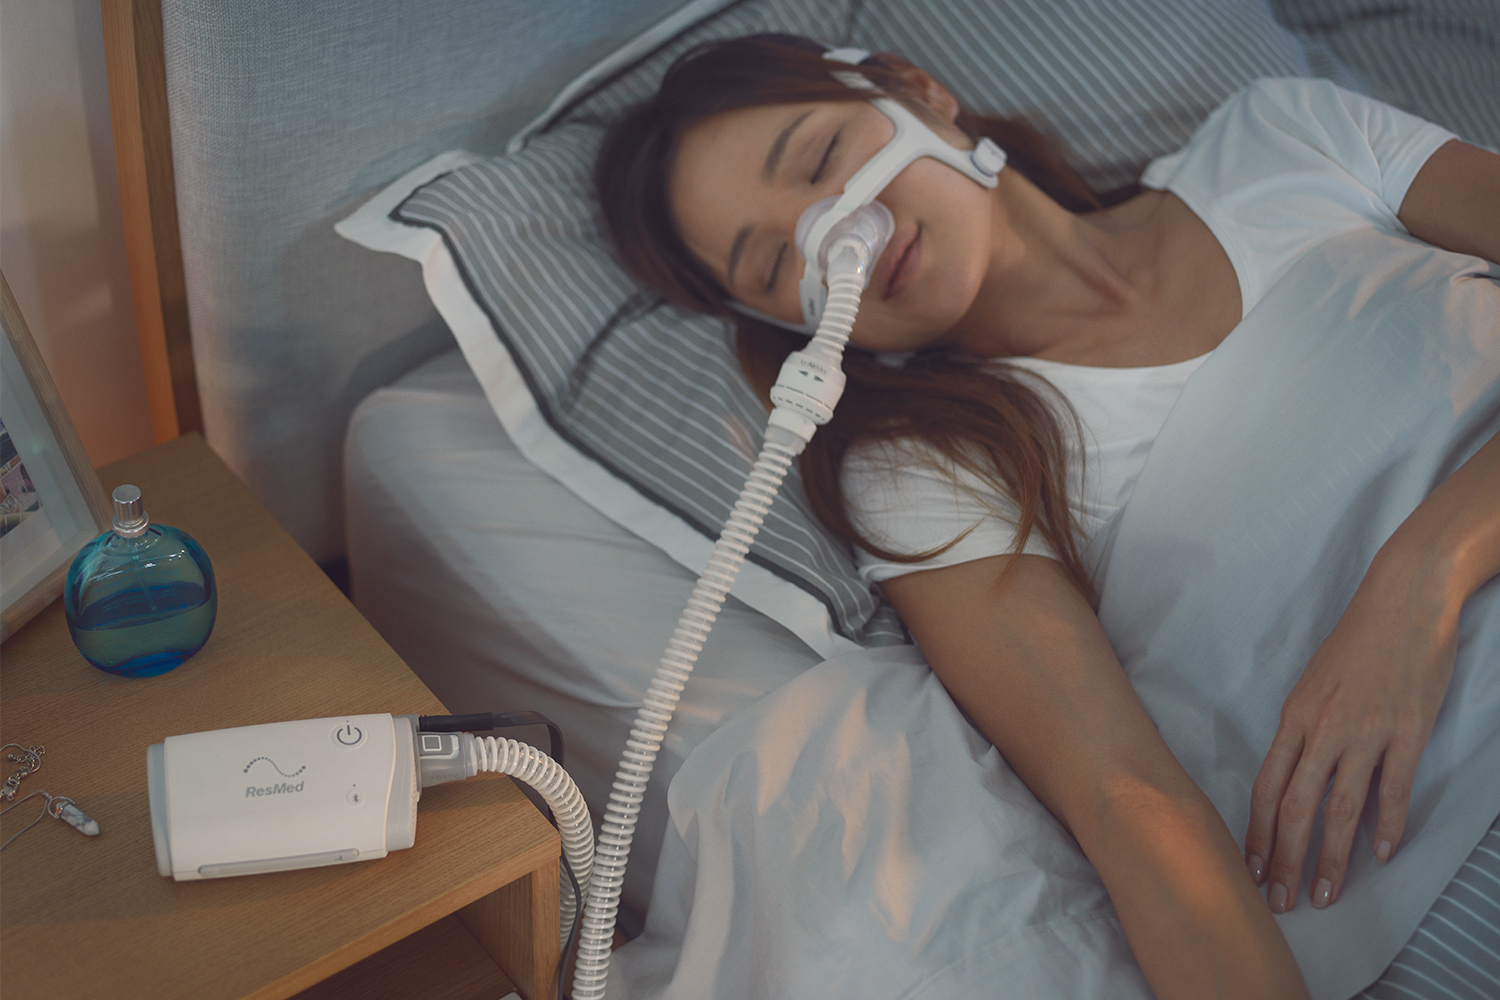 Woman Using AirMini Autoset CPAP Machine in Bed